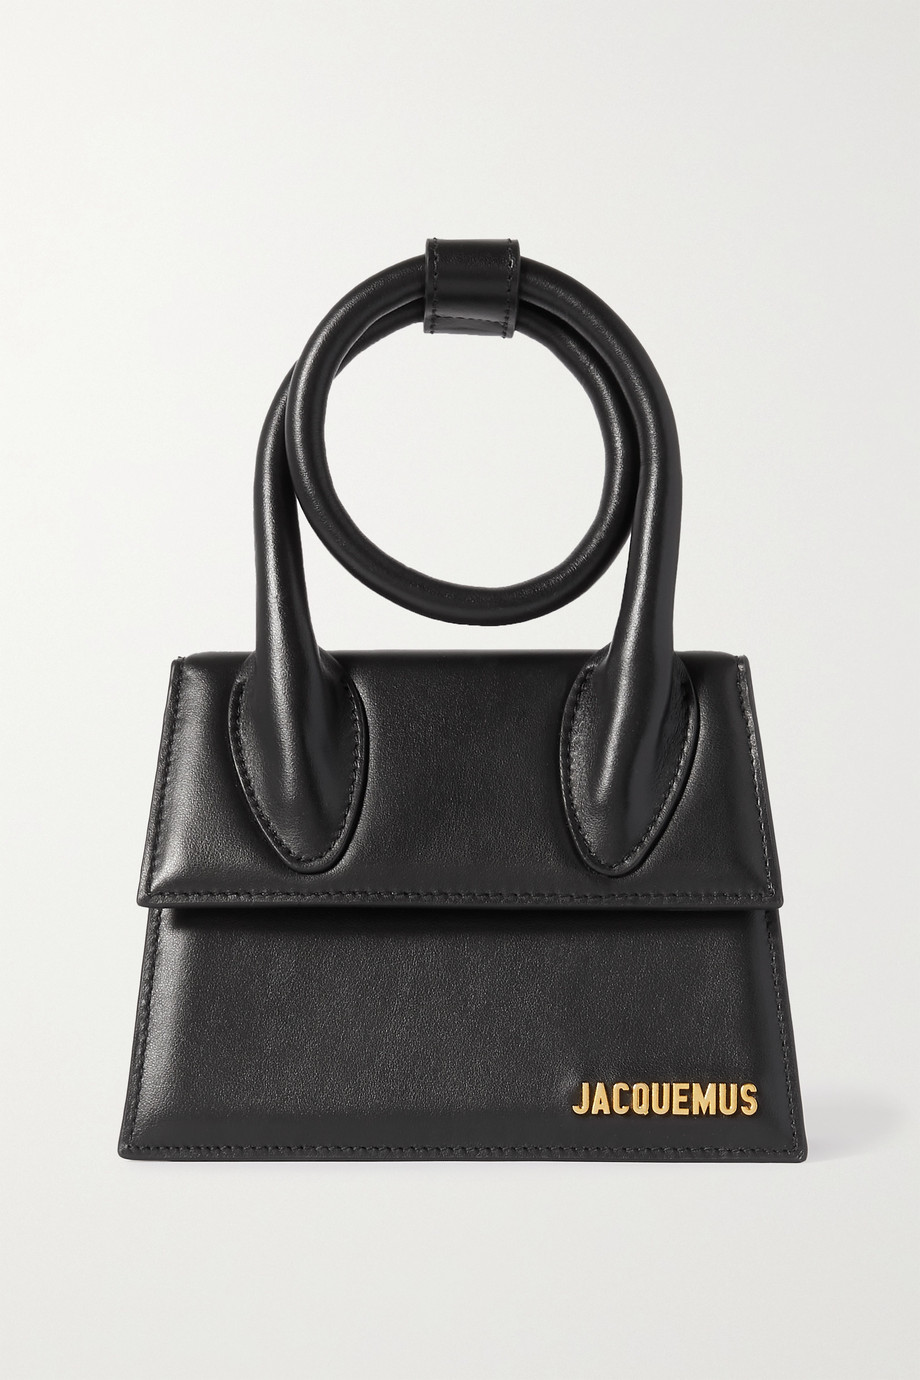 Jacquemus Le Chiquito Noeud small leather shoulder bag